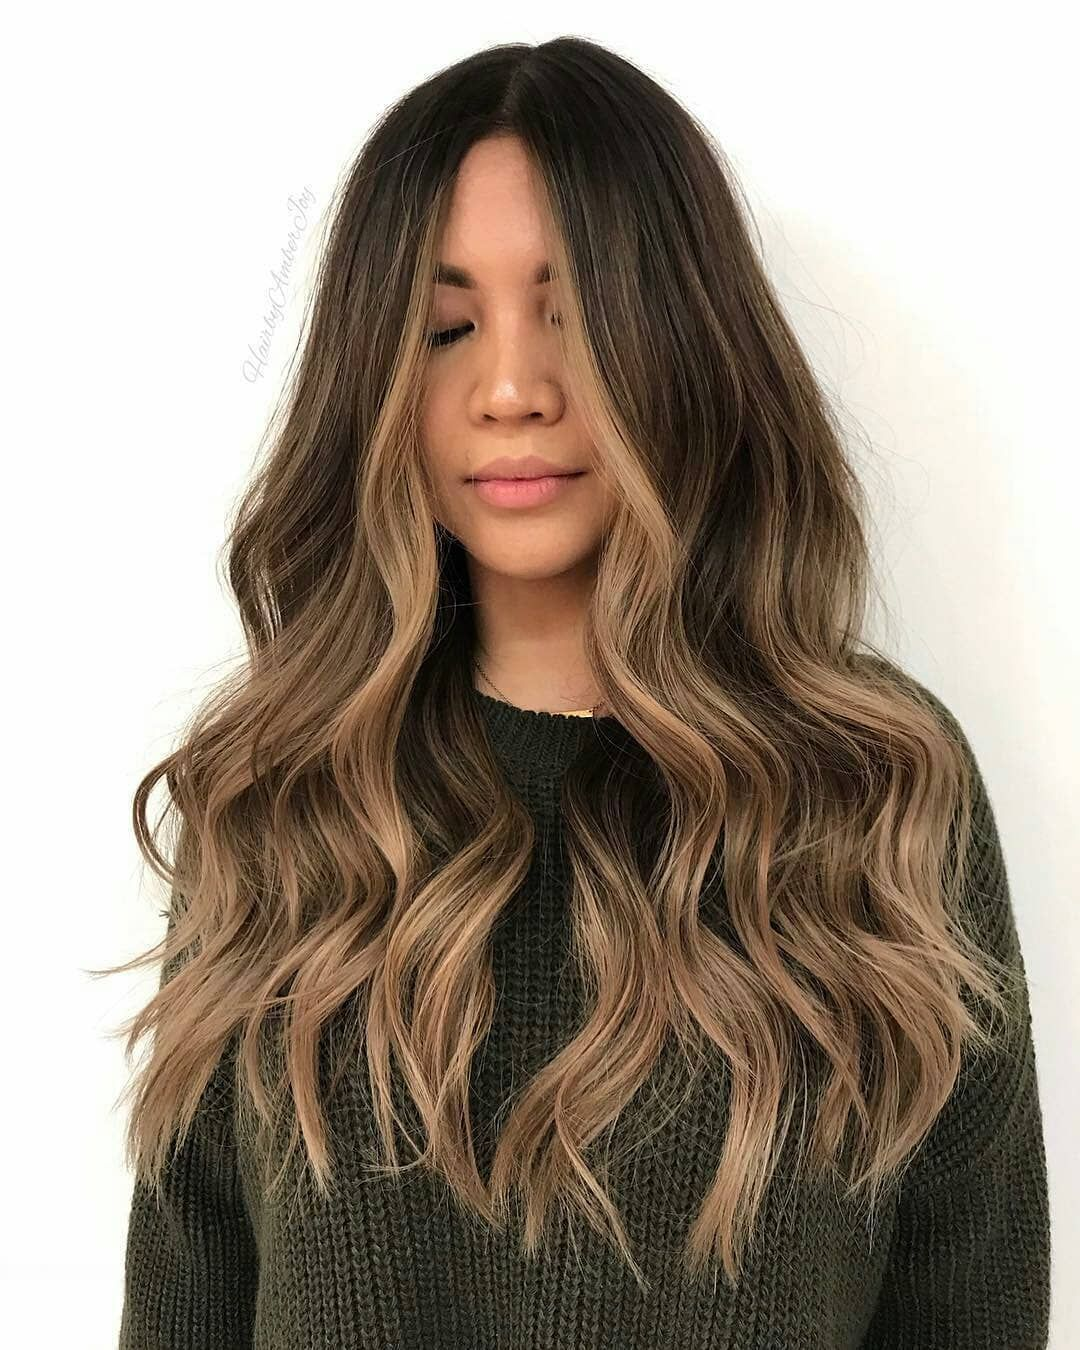 6 Delicate Two Tone Hair Color Ideas For Brunettes For 2019 : Have A